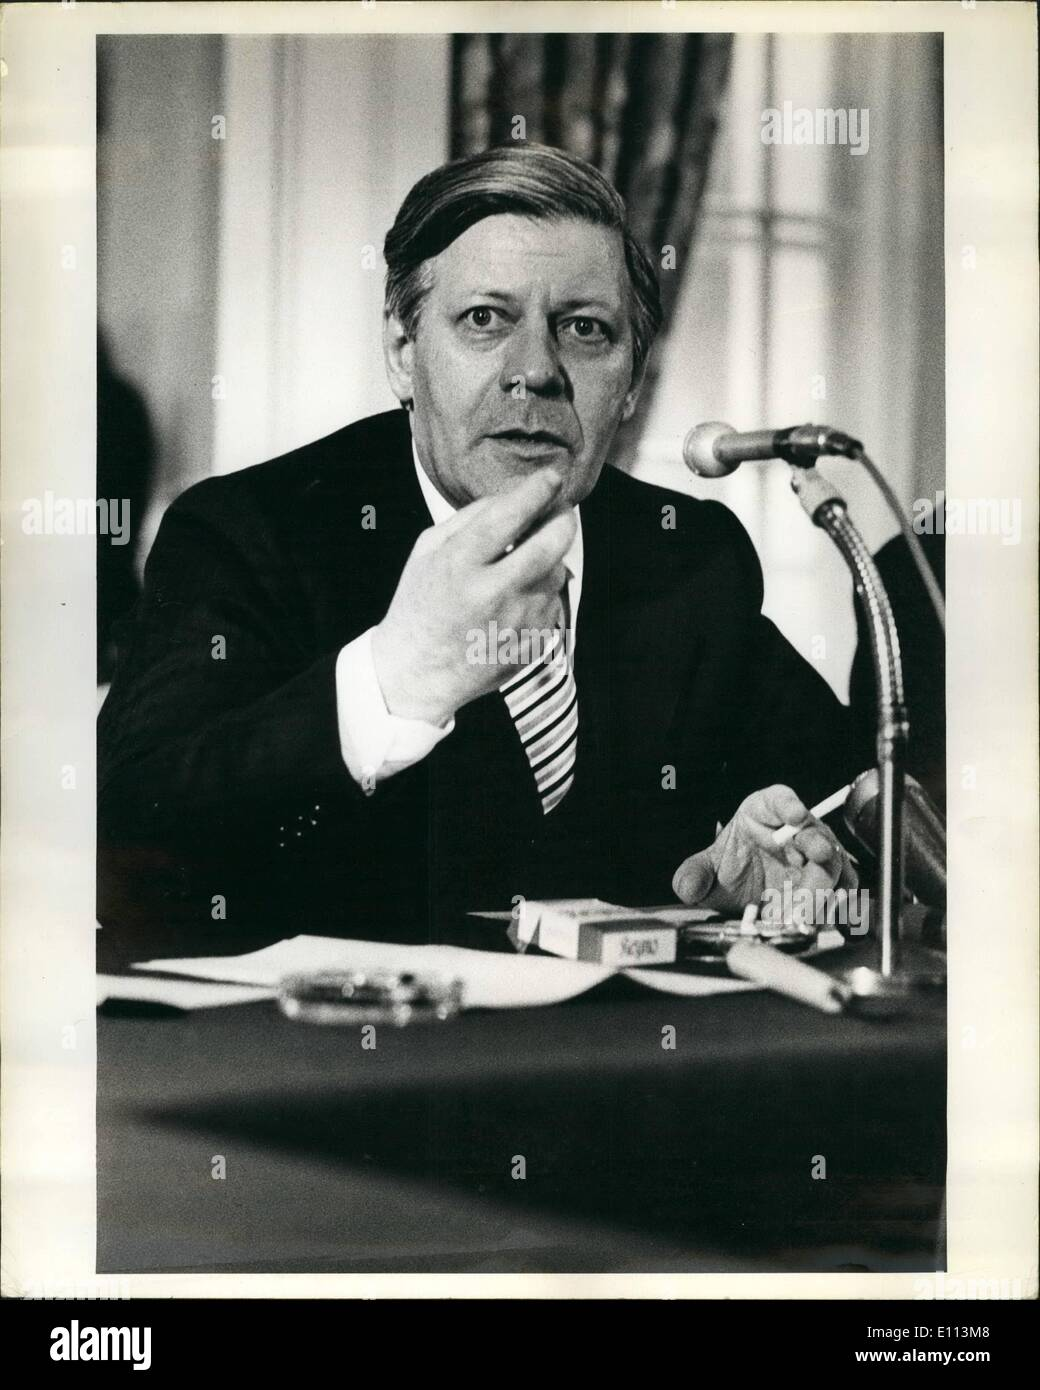 10 octobre 1975 - Helmut Schmidt, chancelier de la République fédérale d'Allemagne s'exprimant lors de l'US Council de la Chambre de commerce et de commerce à l'hôtel Pierre à New York. Photo Stock